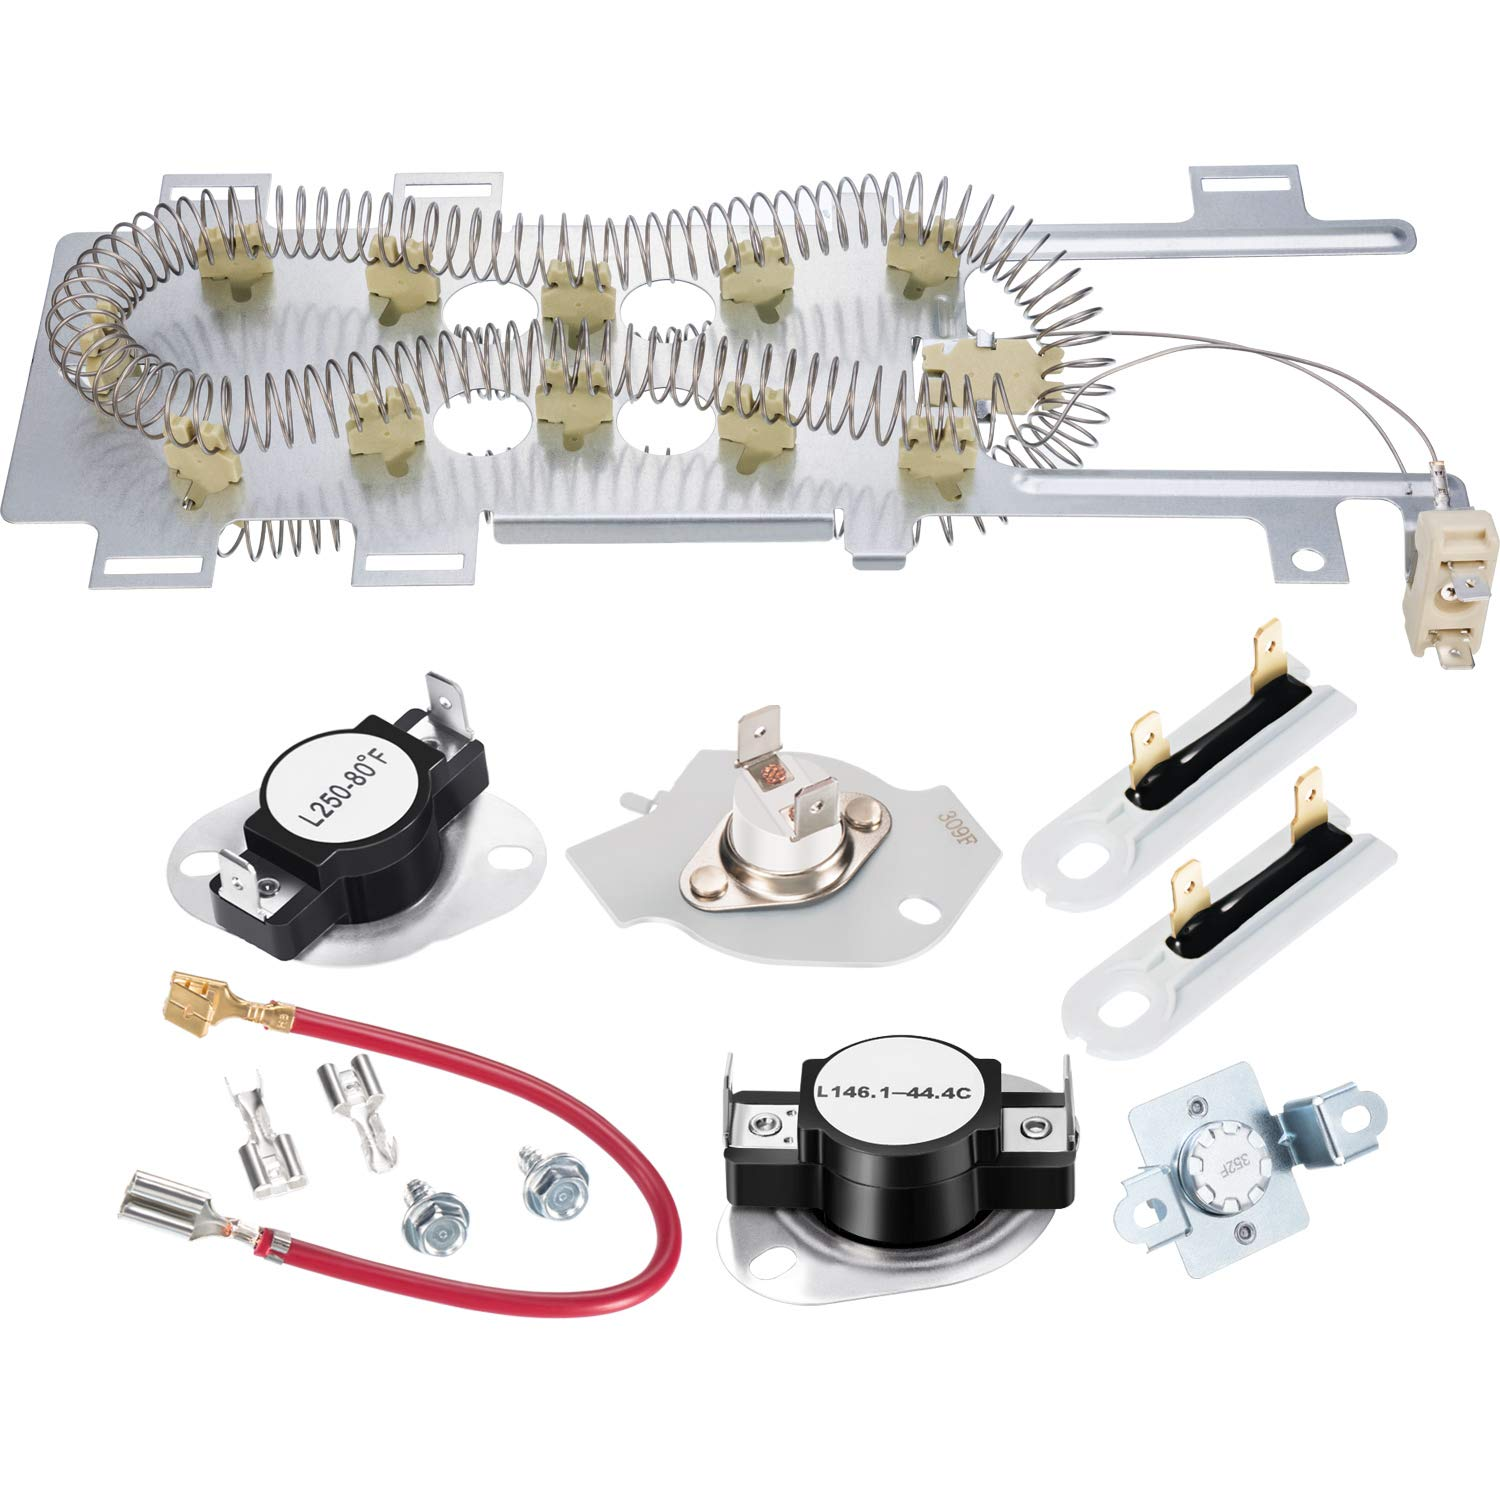 Jovitec Dryer Replacement Including Heating Element 8544771 Thermal Fuse (279973 and 3392519), 279816 Thermostat Compatible with Maytag, Kenmore and More